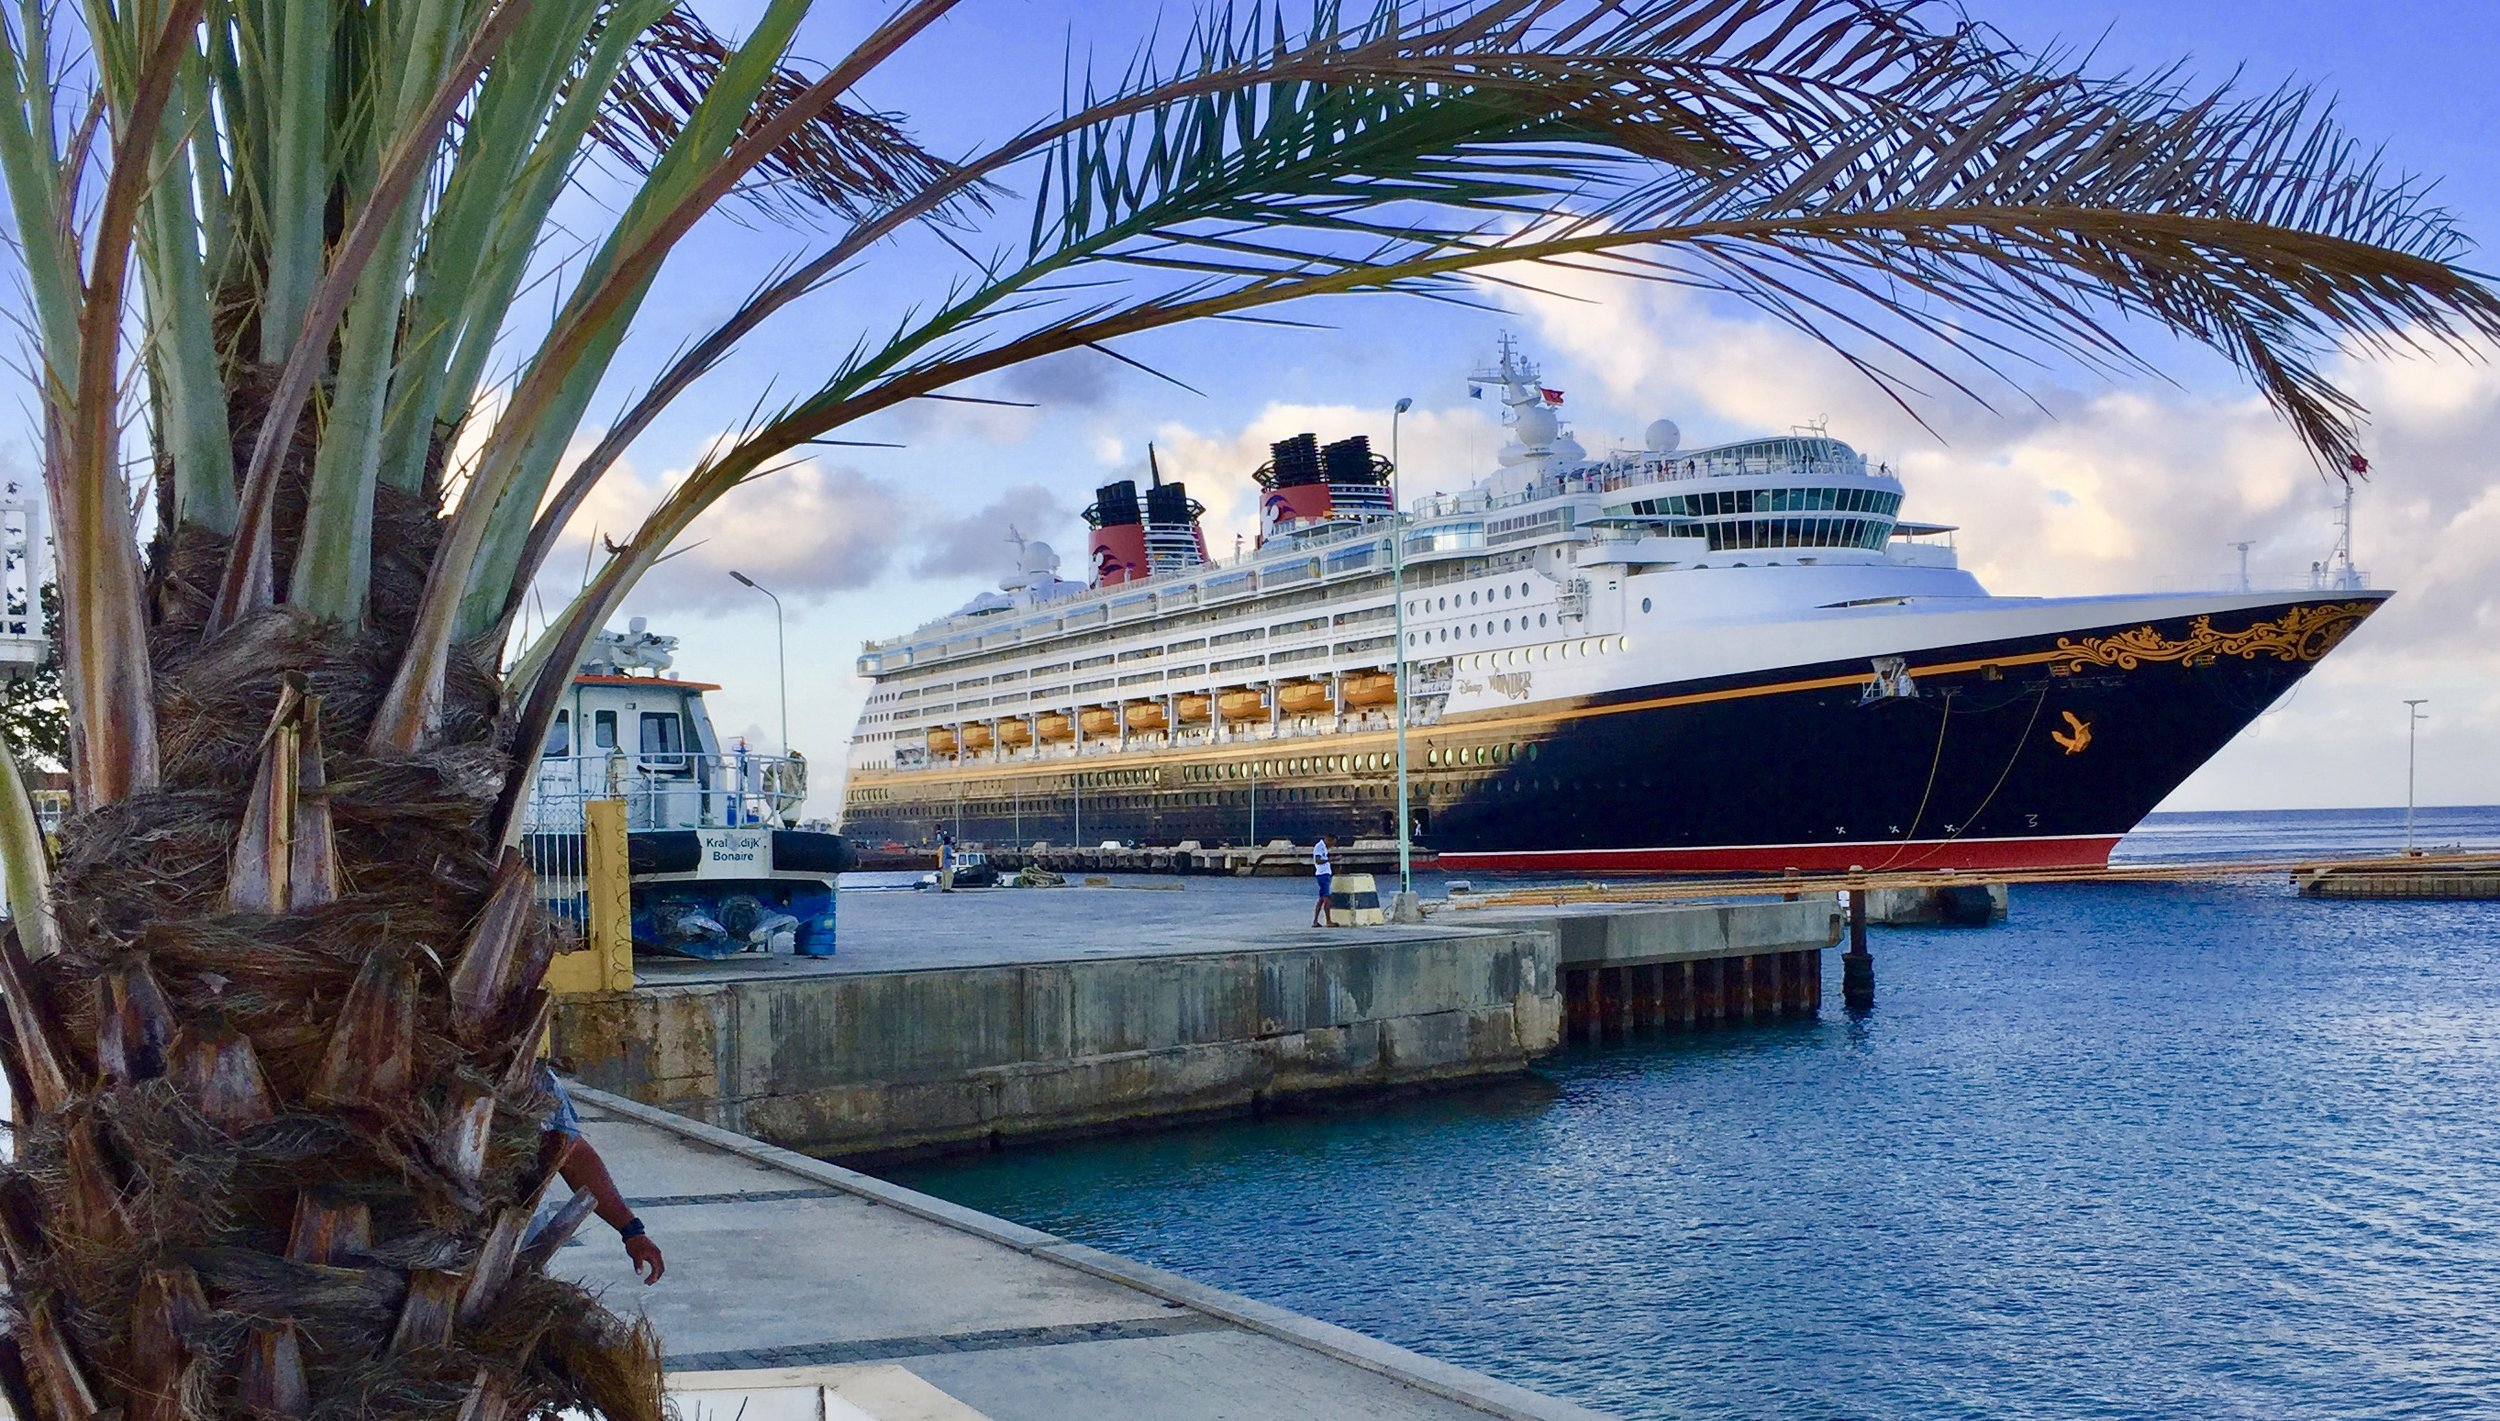 Disney Wonder's first visit to Bonaire - February 2018